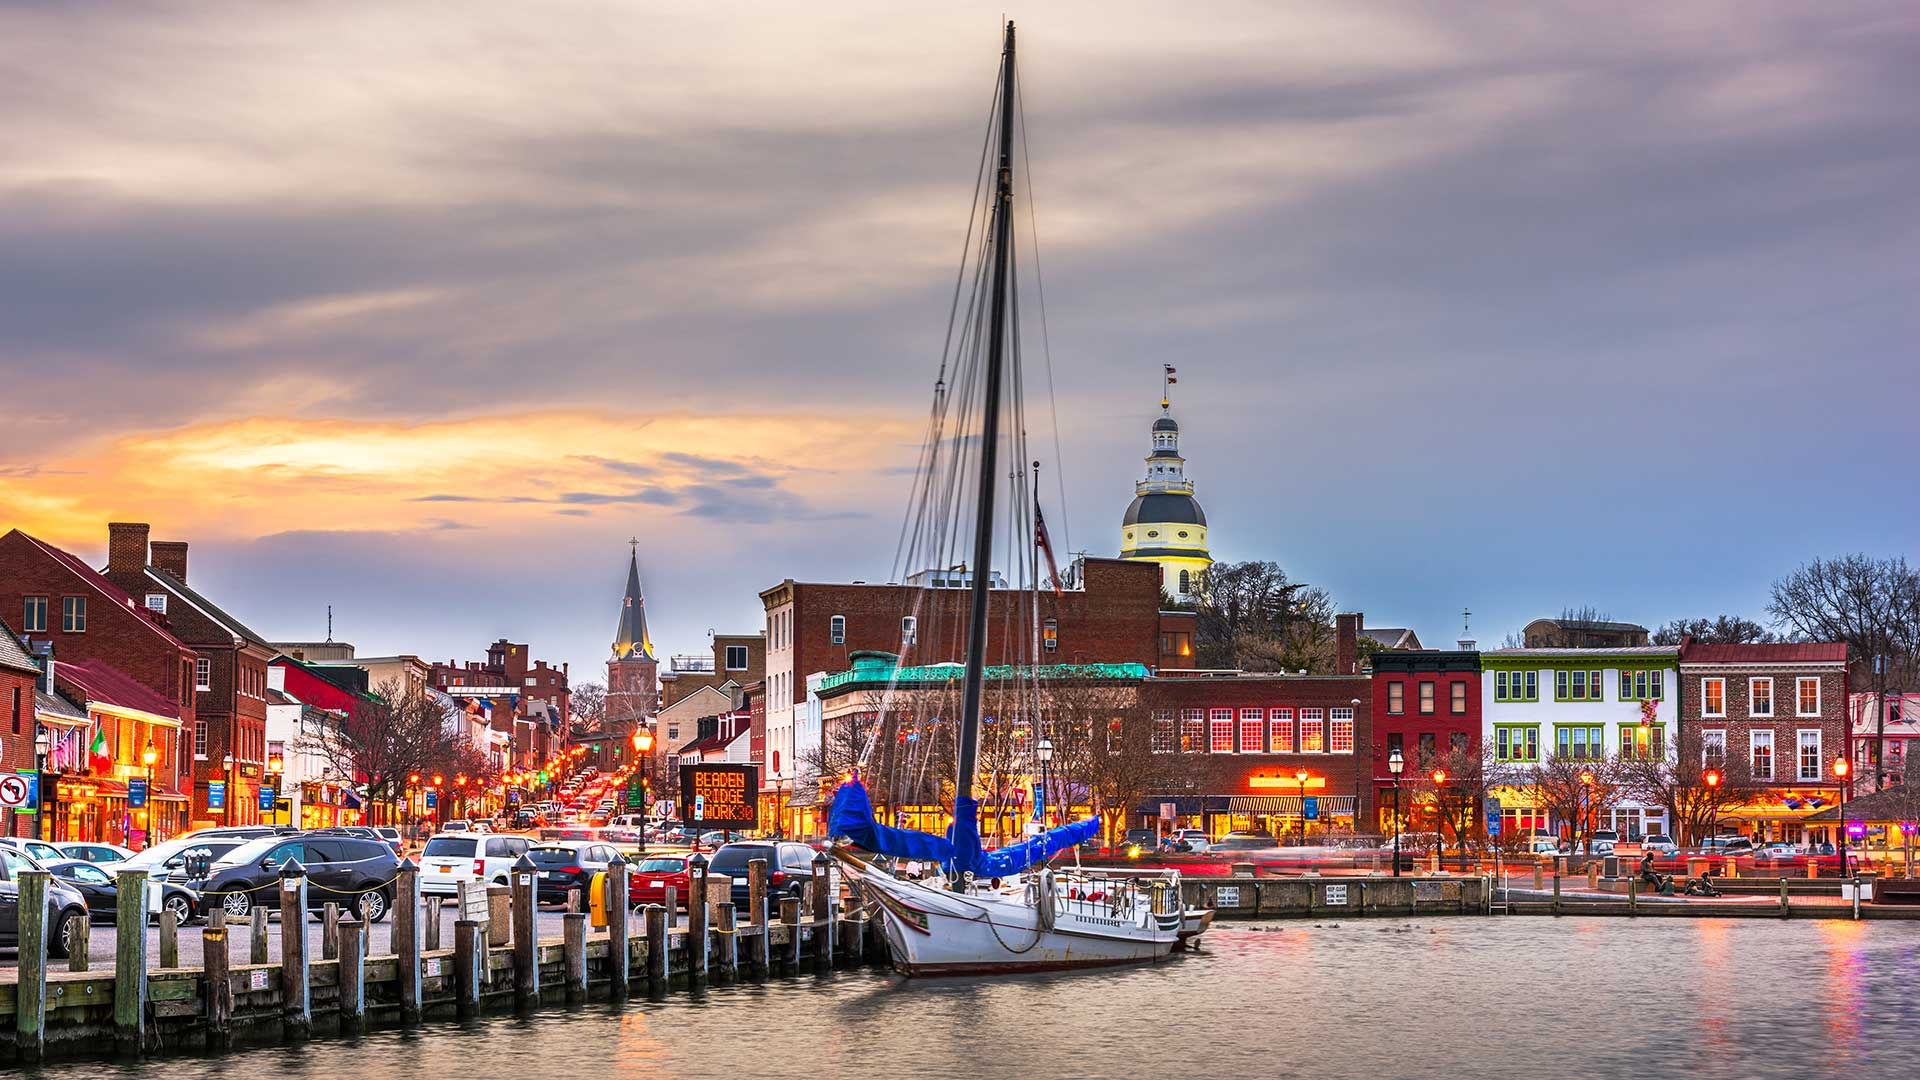 Panorama to illustrate dating in annapolis